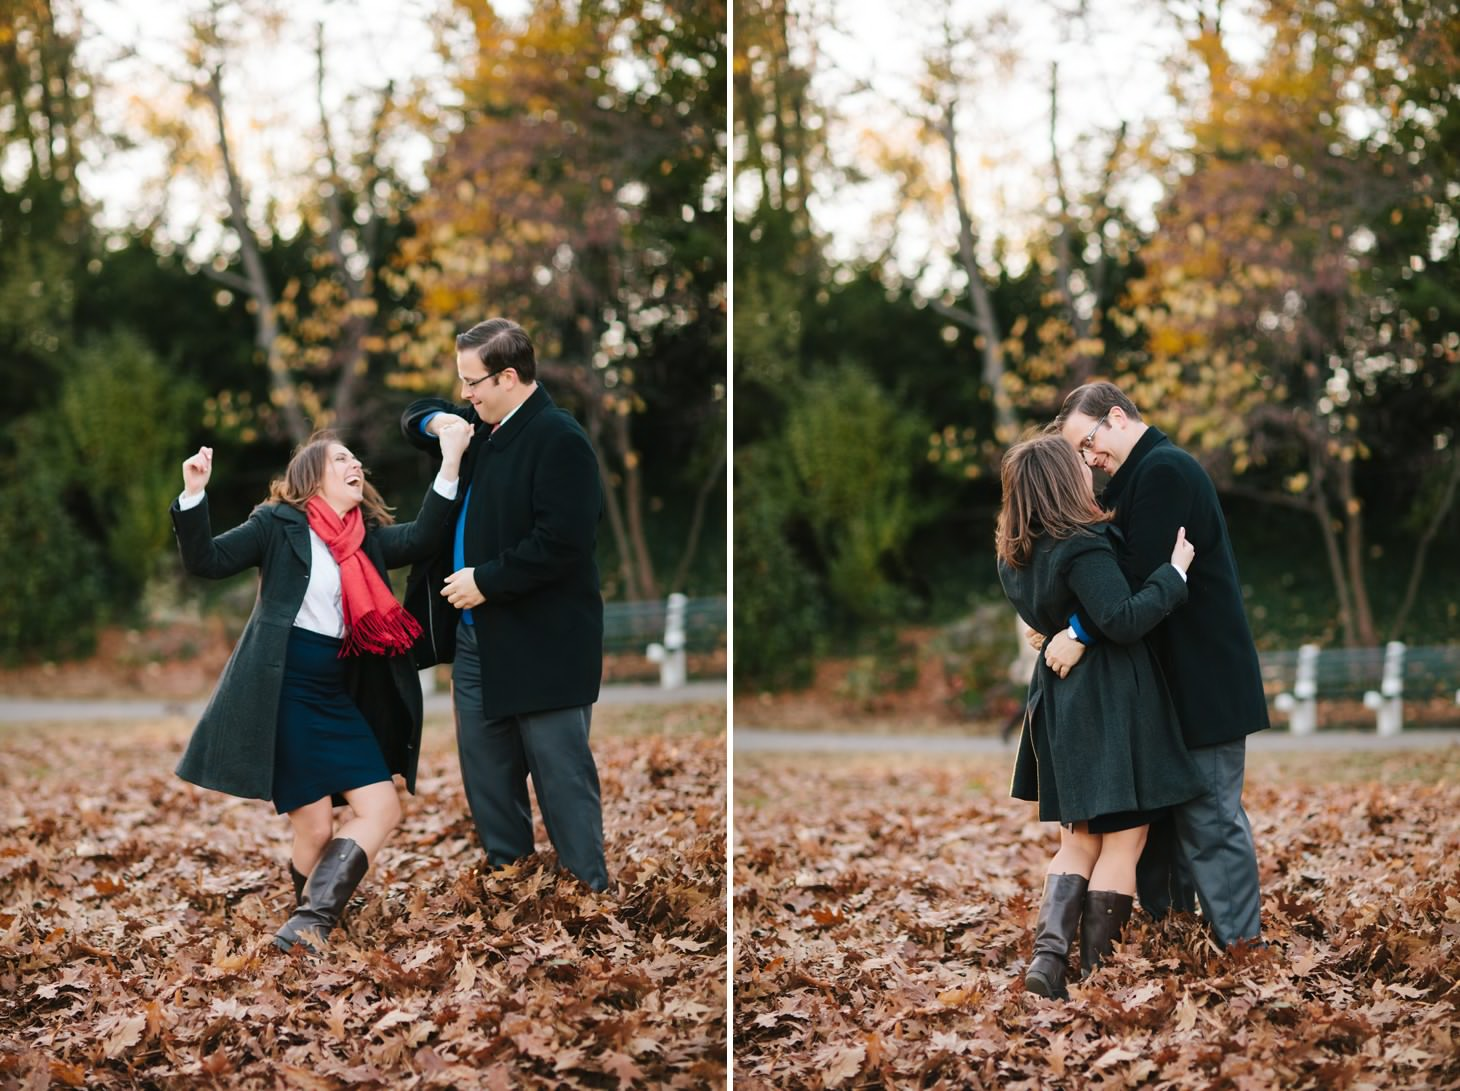 008-nyc-wedding-portrait-photographer-engagement-photos-cloisters-fall-leaves-smitten-chickens.jpg